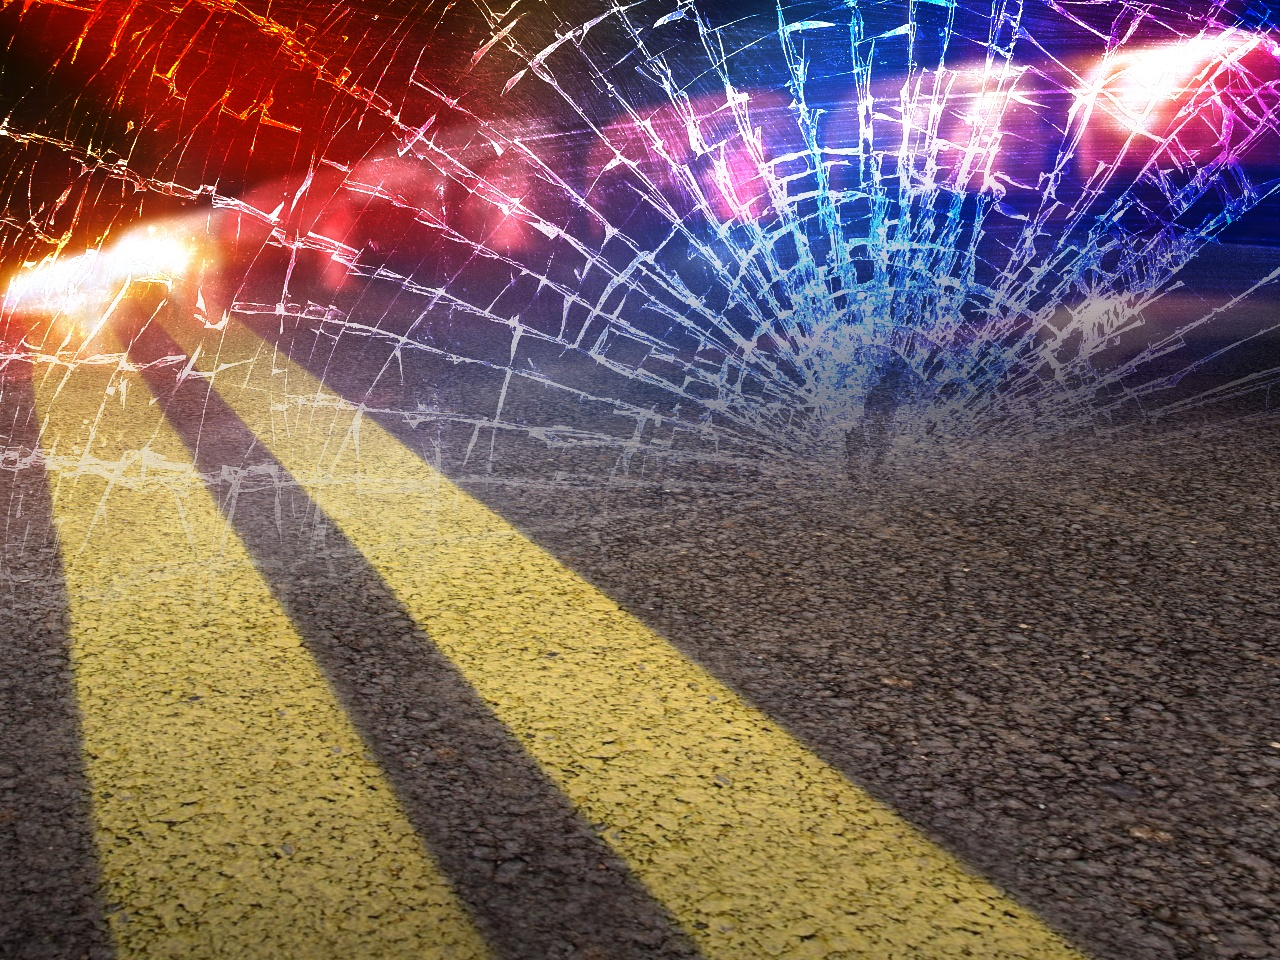 Homeowner Sidney Linscott, 84, was rear-ended as he was turning into his driveway Sunday afternoon, according to Oxford police. (MGN)